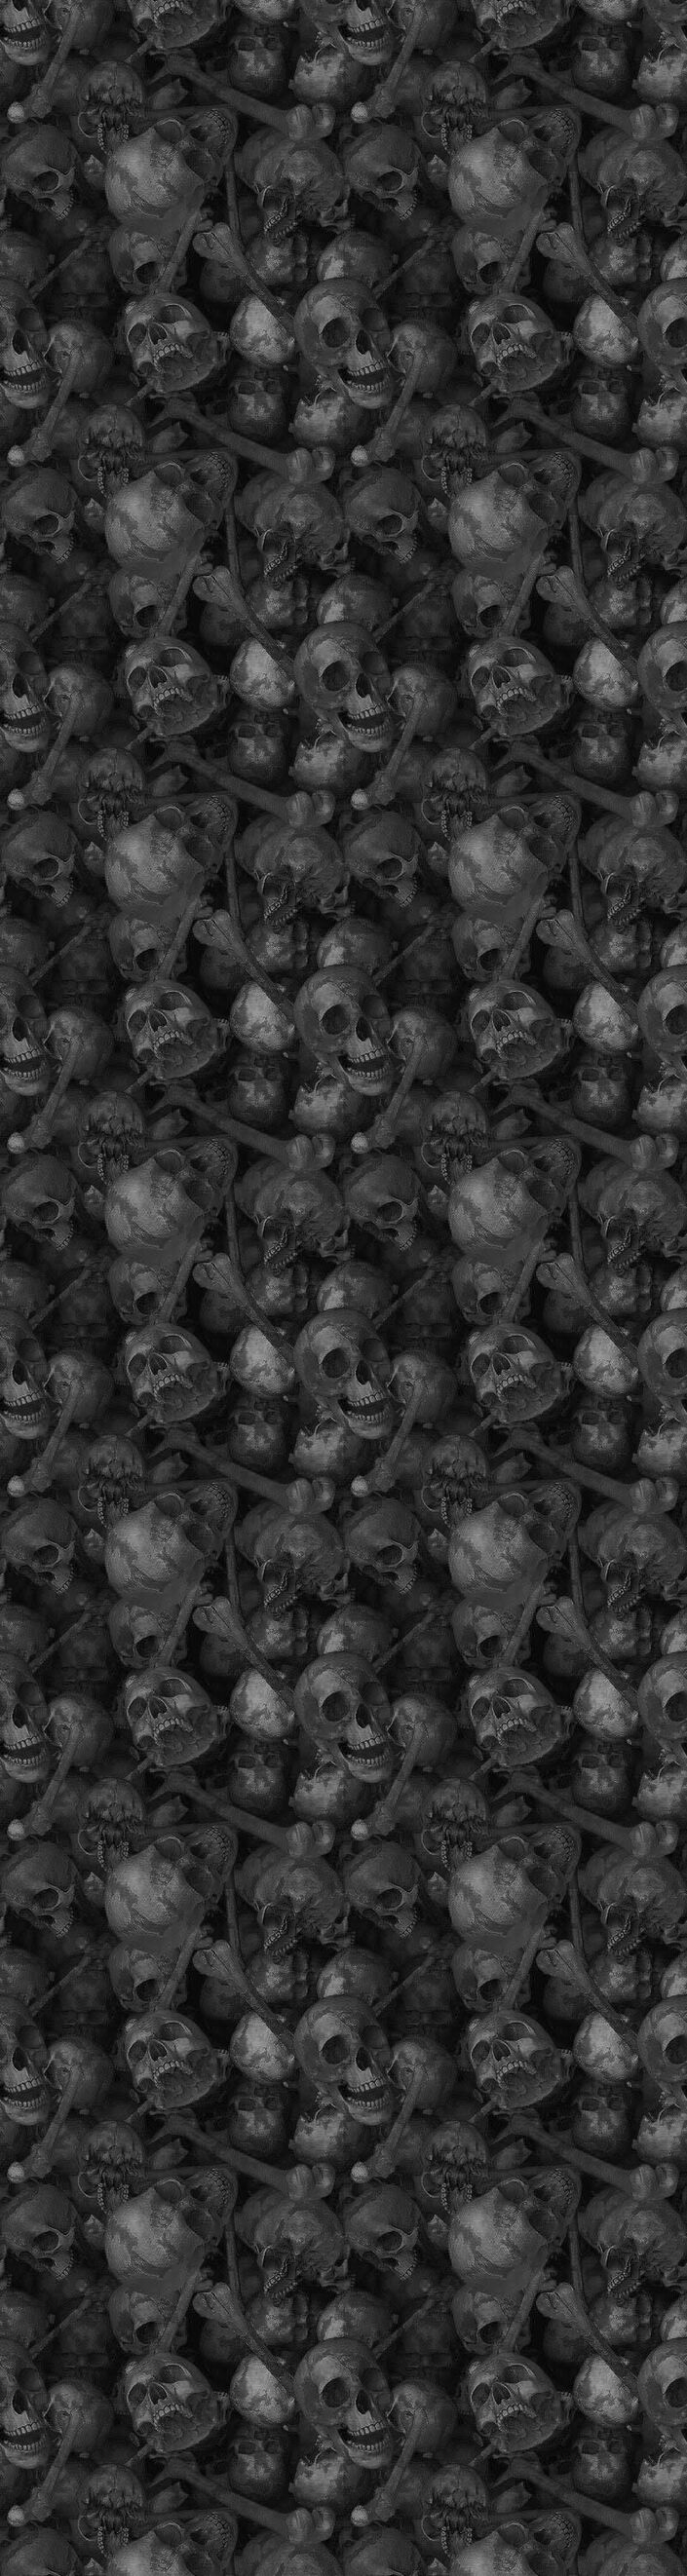 Skull Tile Gray Wikia Template